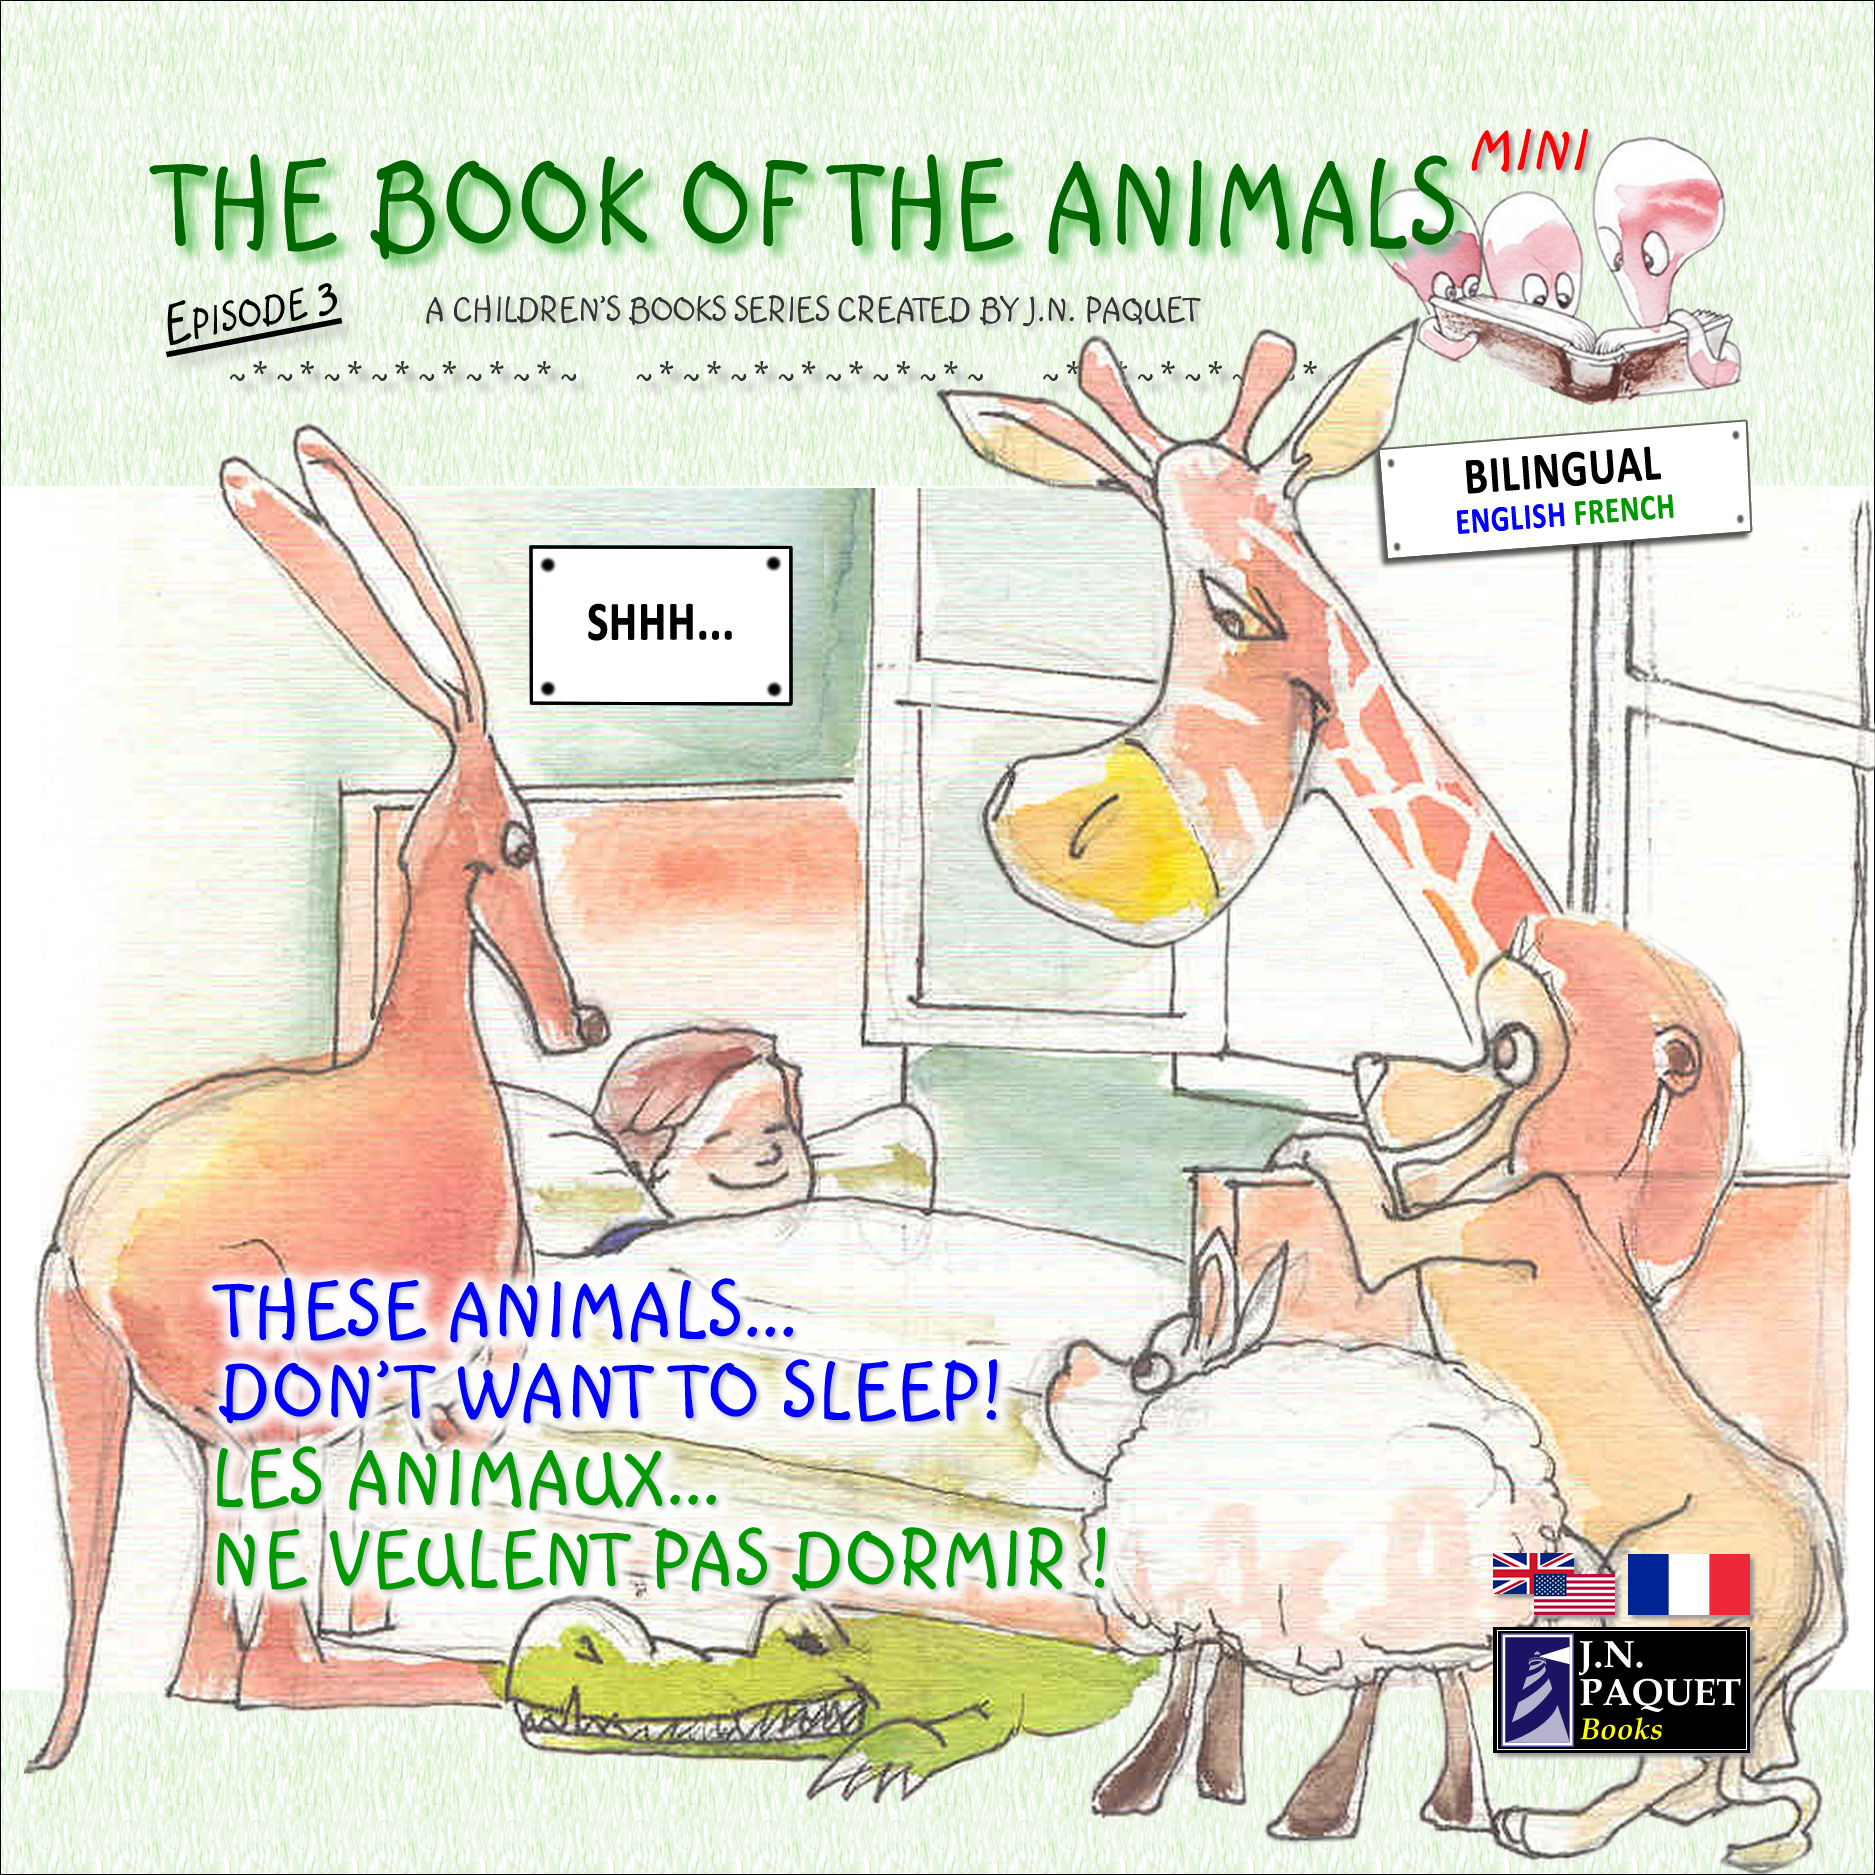 The Book of The Animals - Mini - Episode 3 (Bilingual English-French) By: J.N. PAQUET